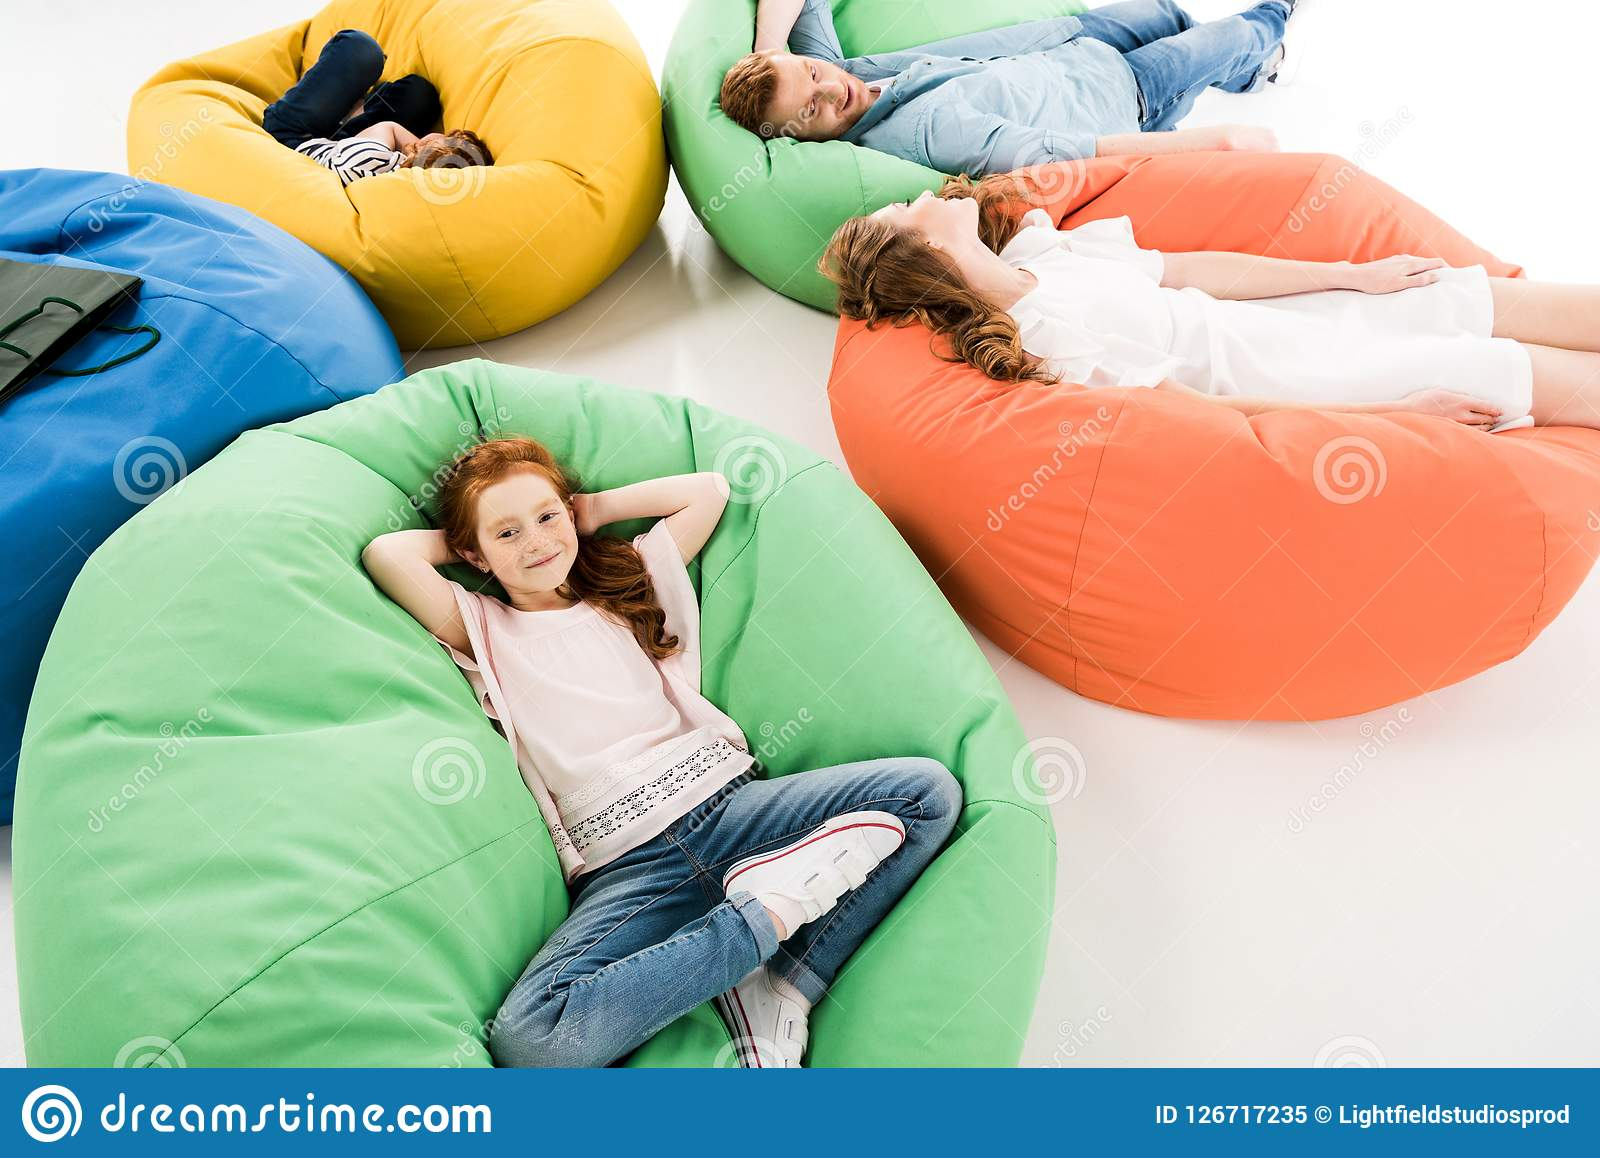 high angle view of happy family with two kids resting on bean bag chairs after shopping